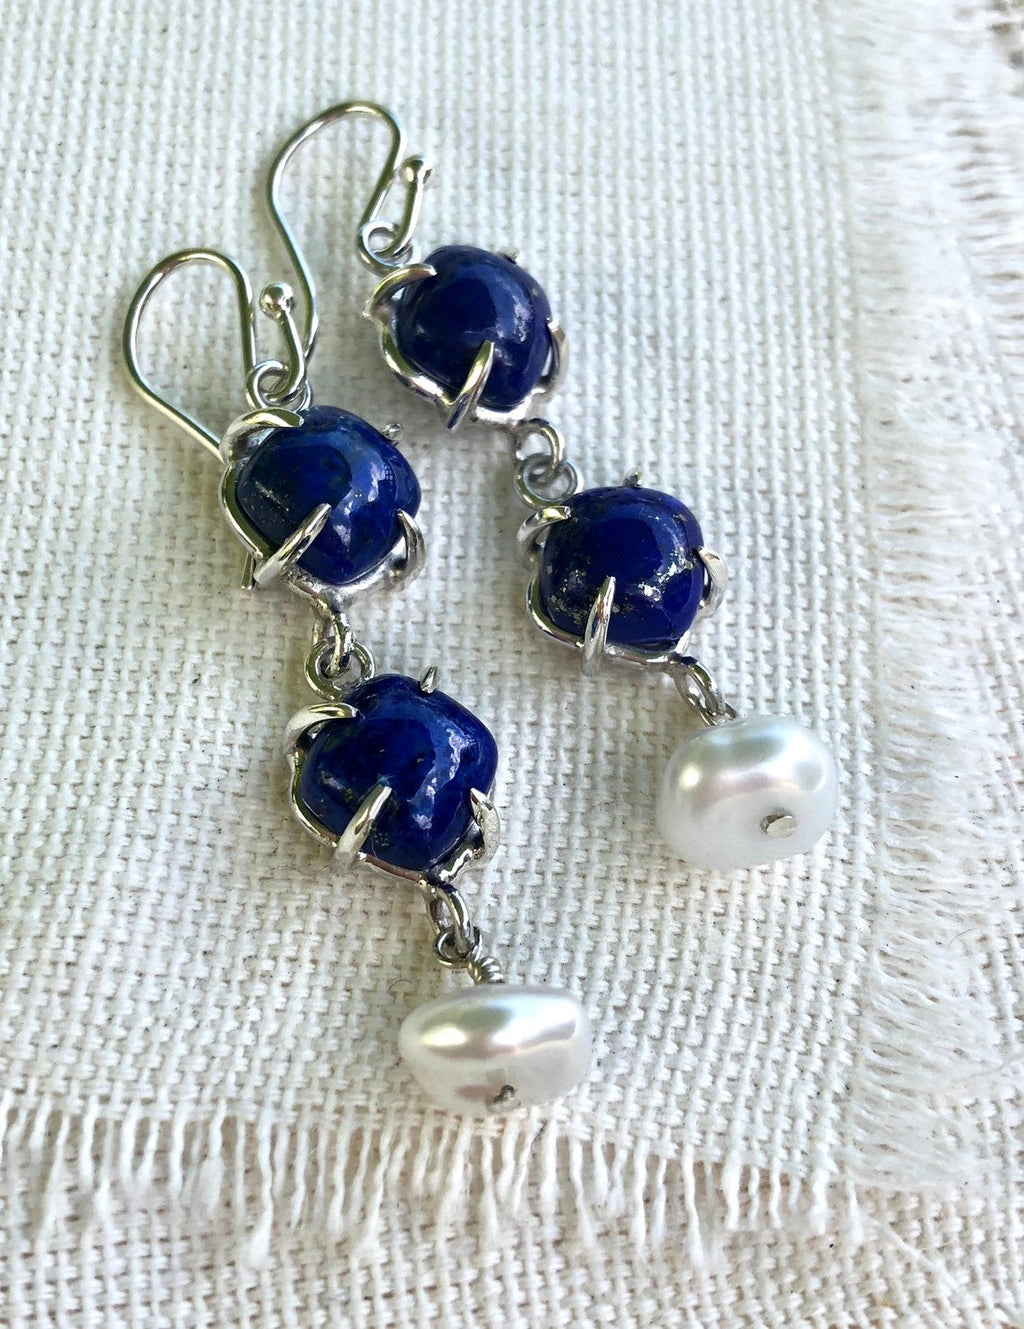 Lapis Earrings, Lapis Dangle Earrings, Blue Earrings, Pearl Earrings, Lapis and Pearl Earrings, Lapis Jewelry